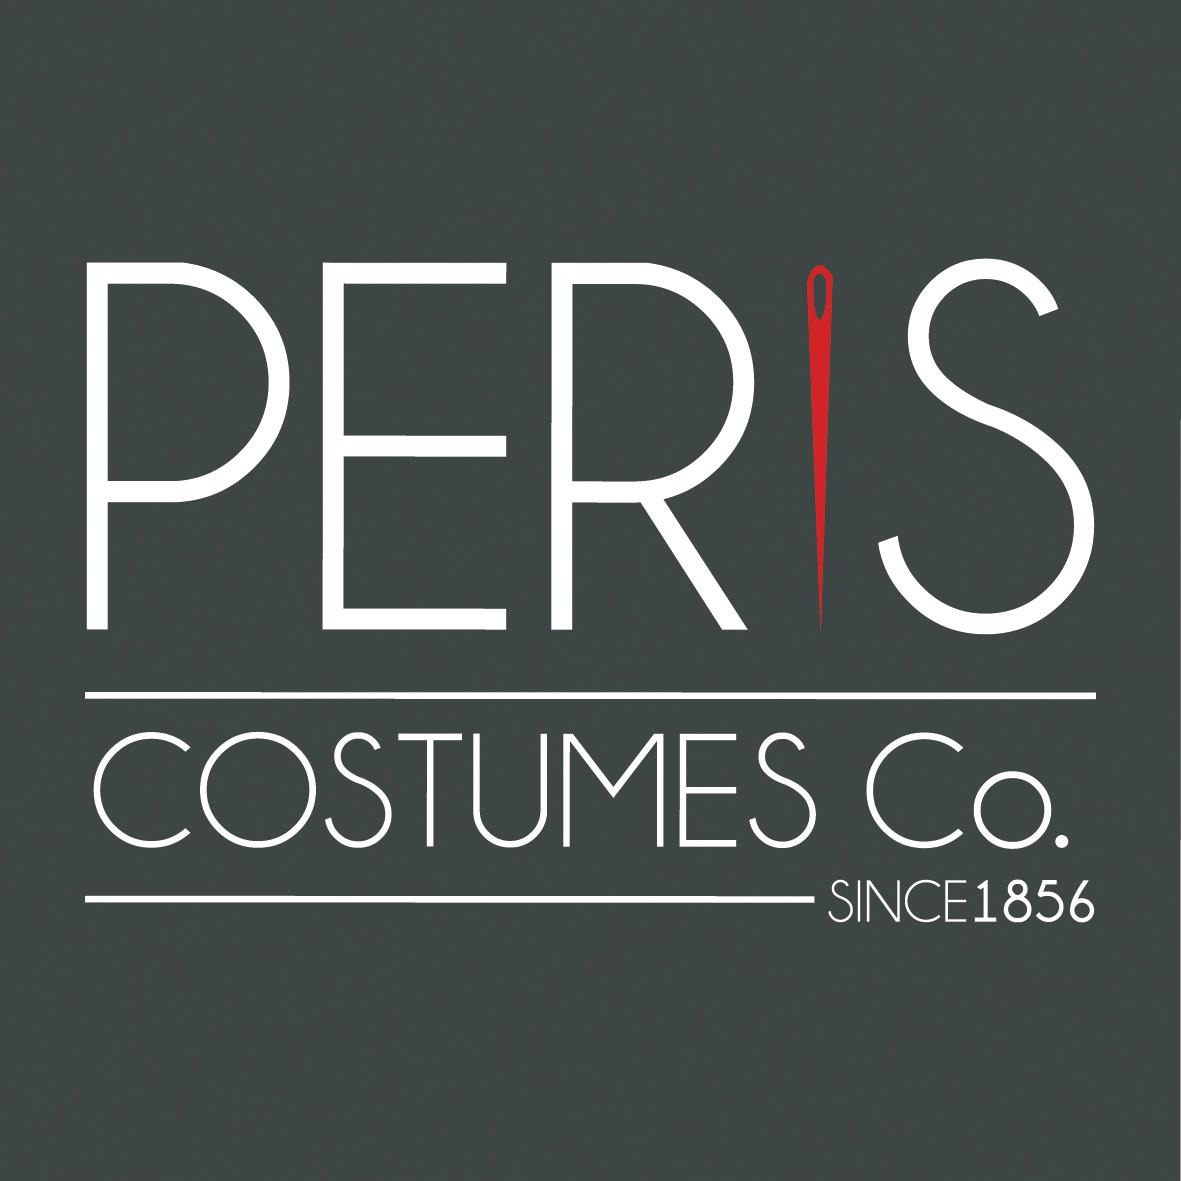 Peris Costumes & Co